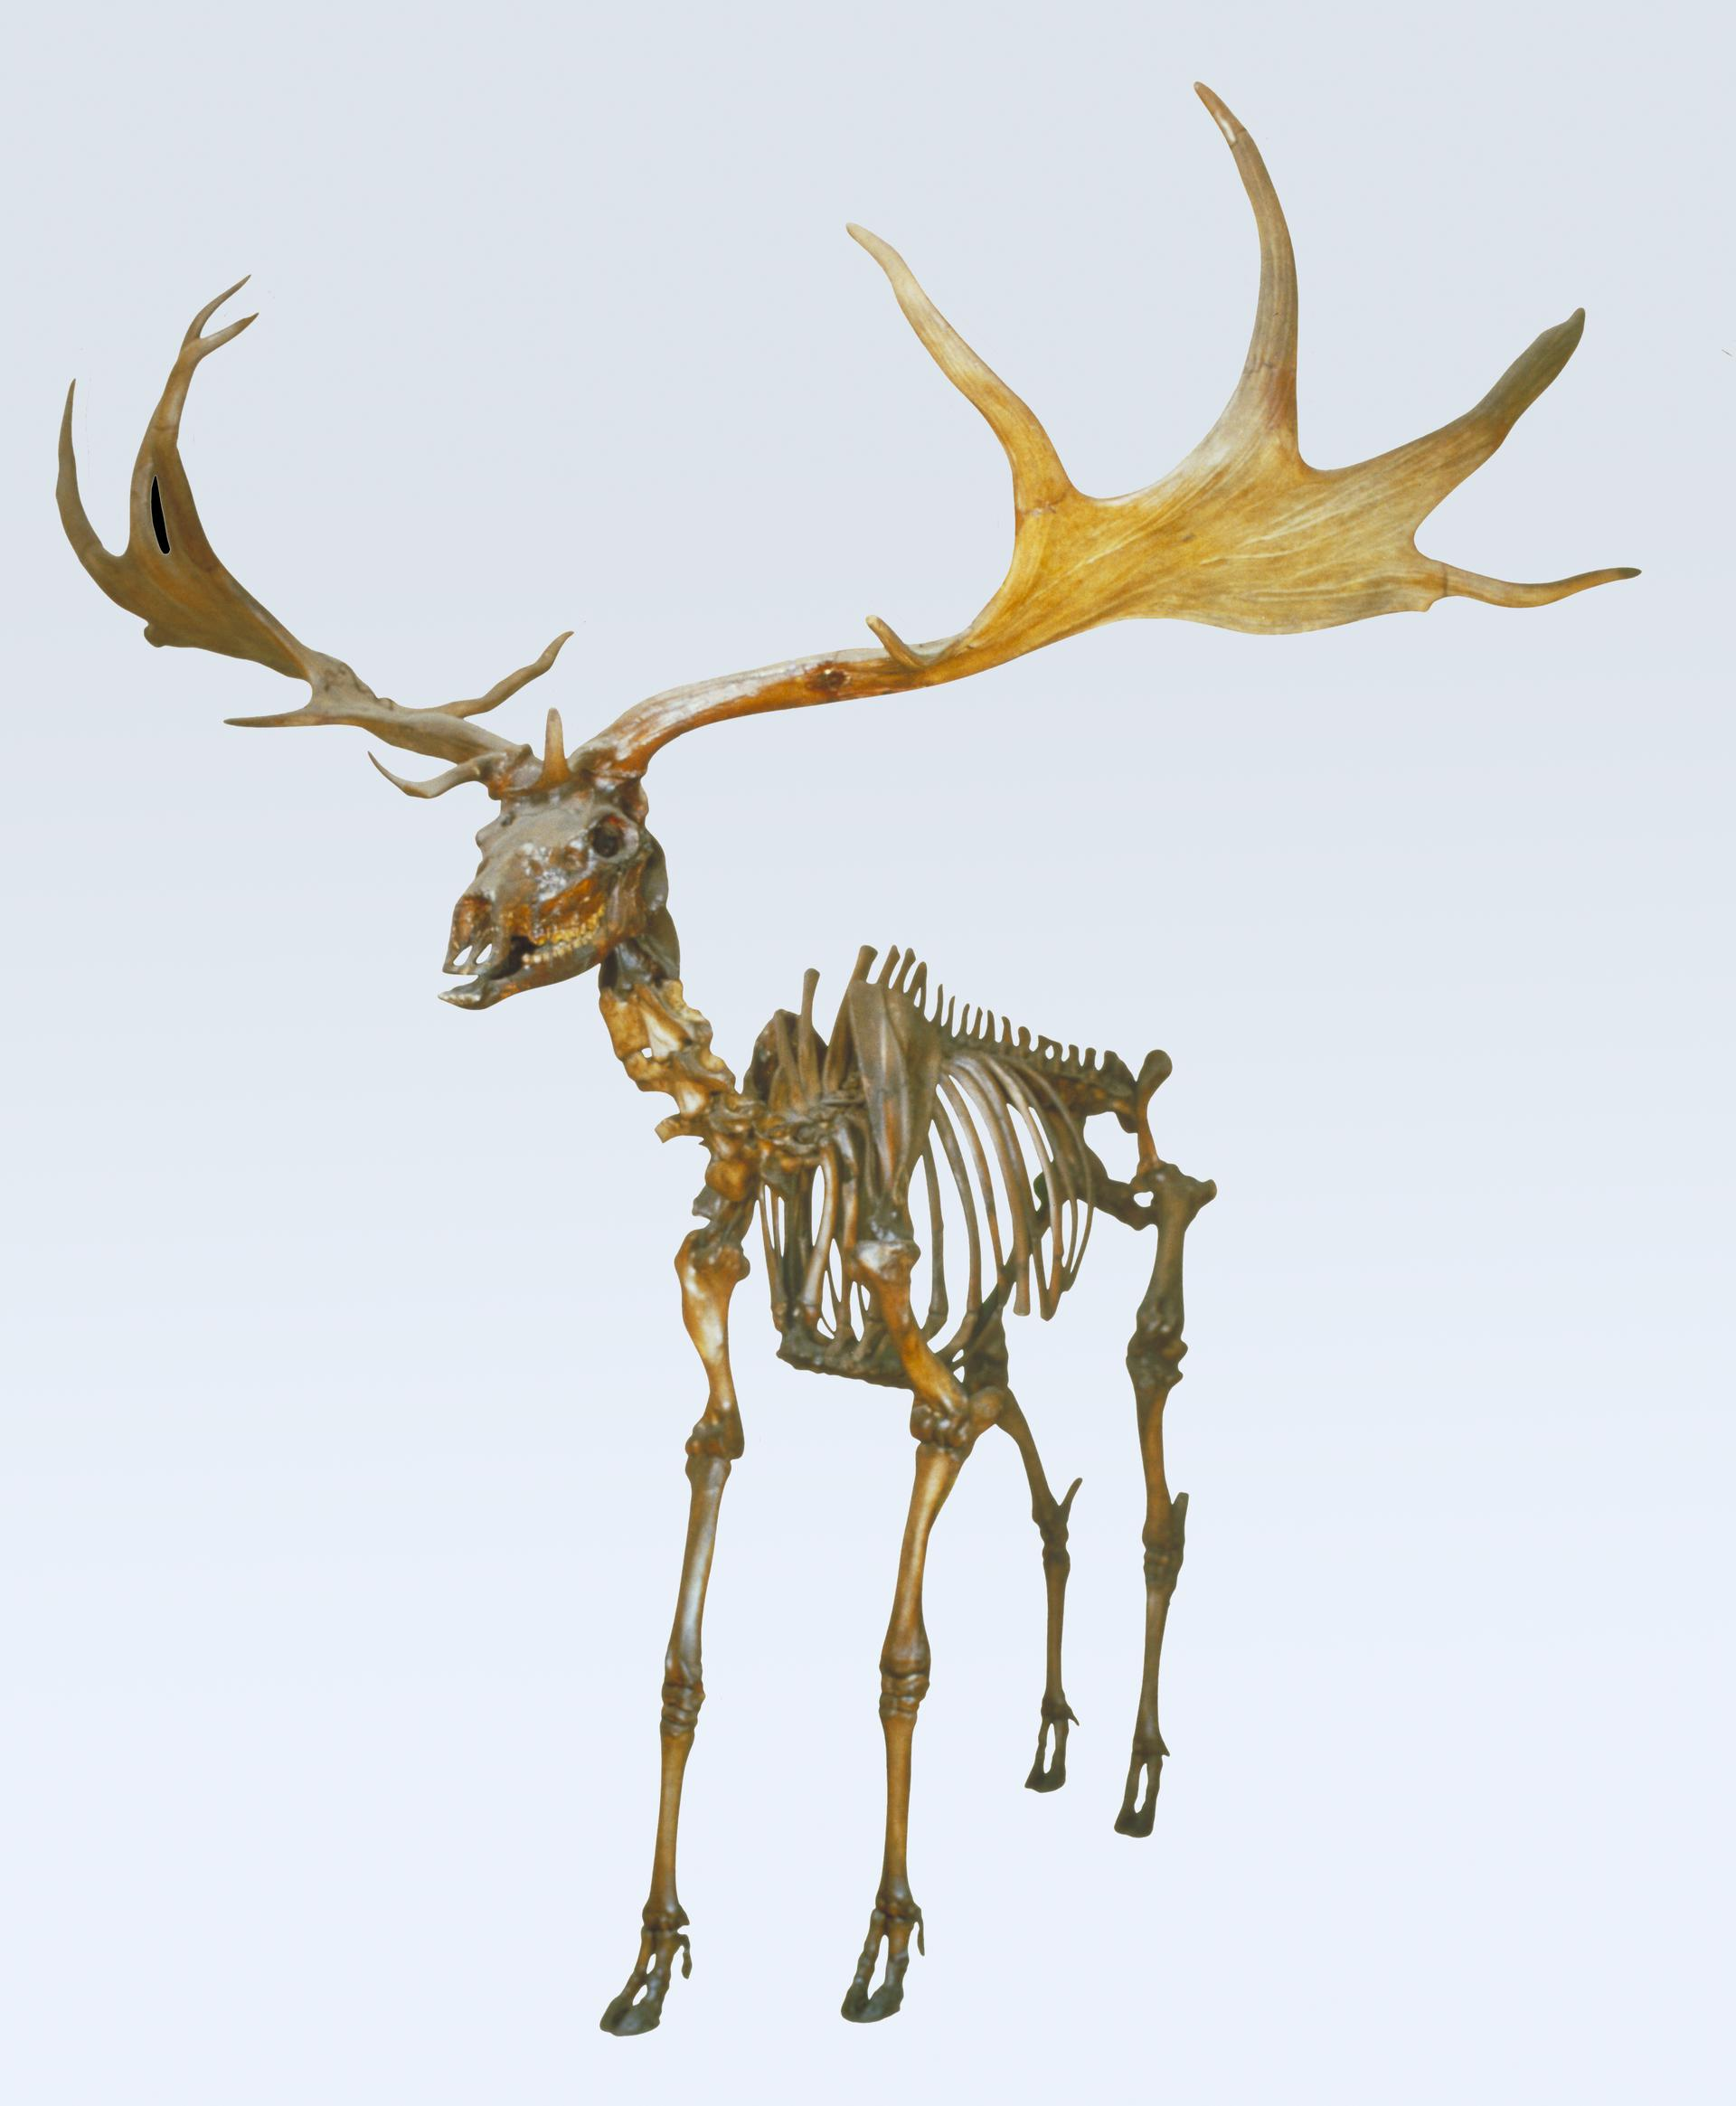 Giant deer skeleton Natural History Zoology Collection i